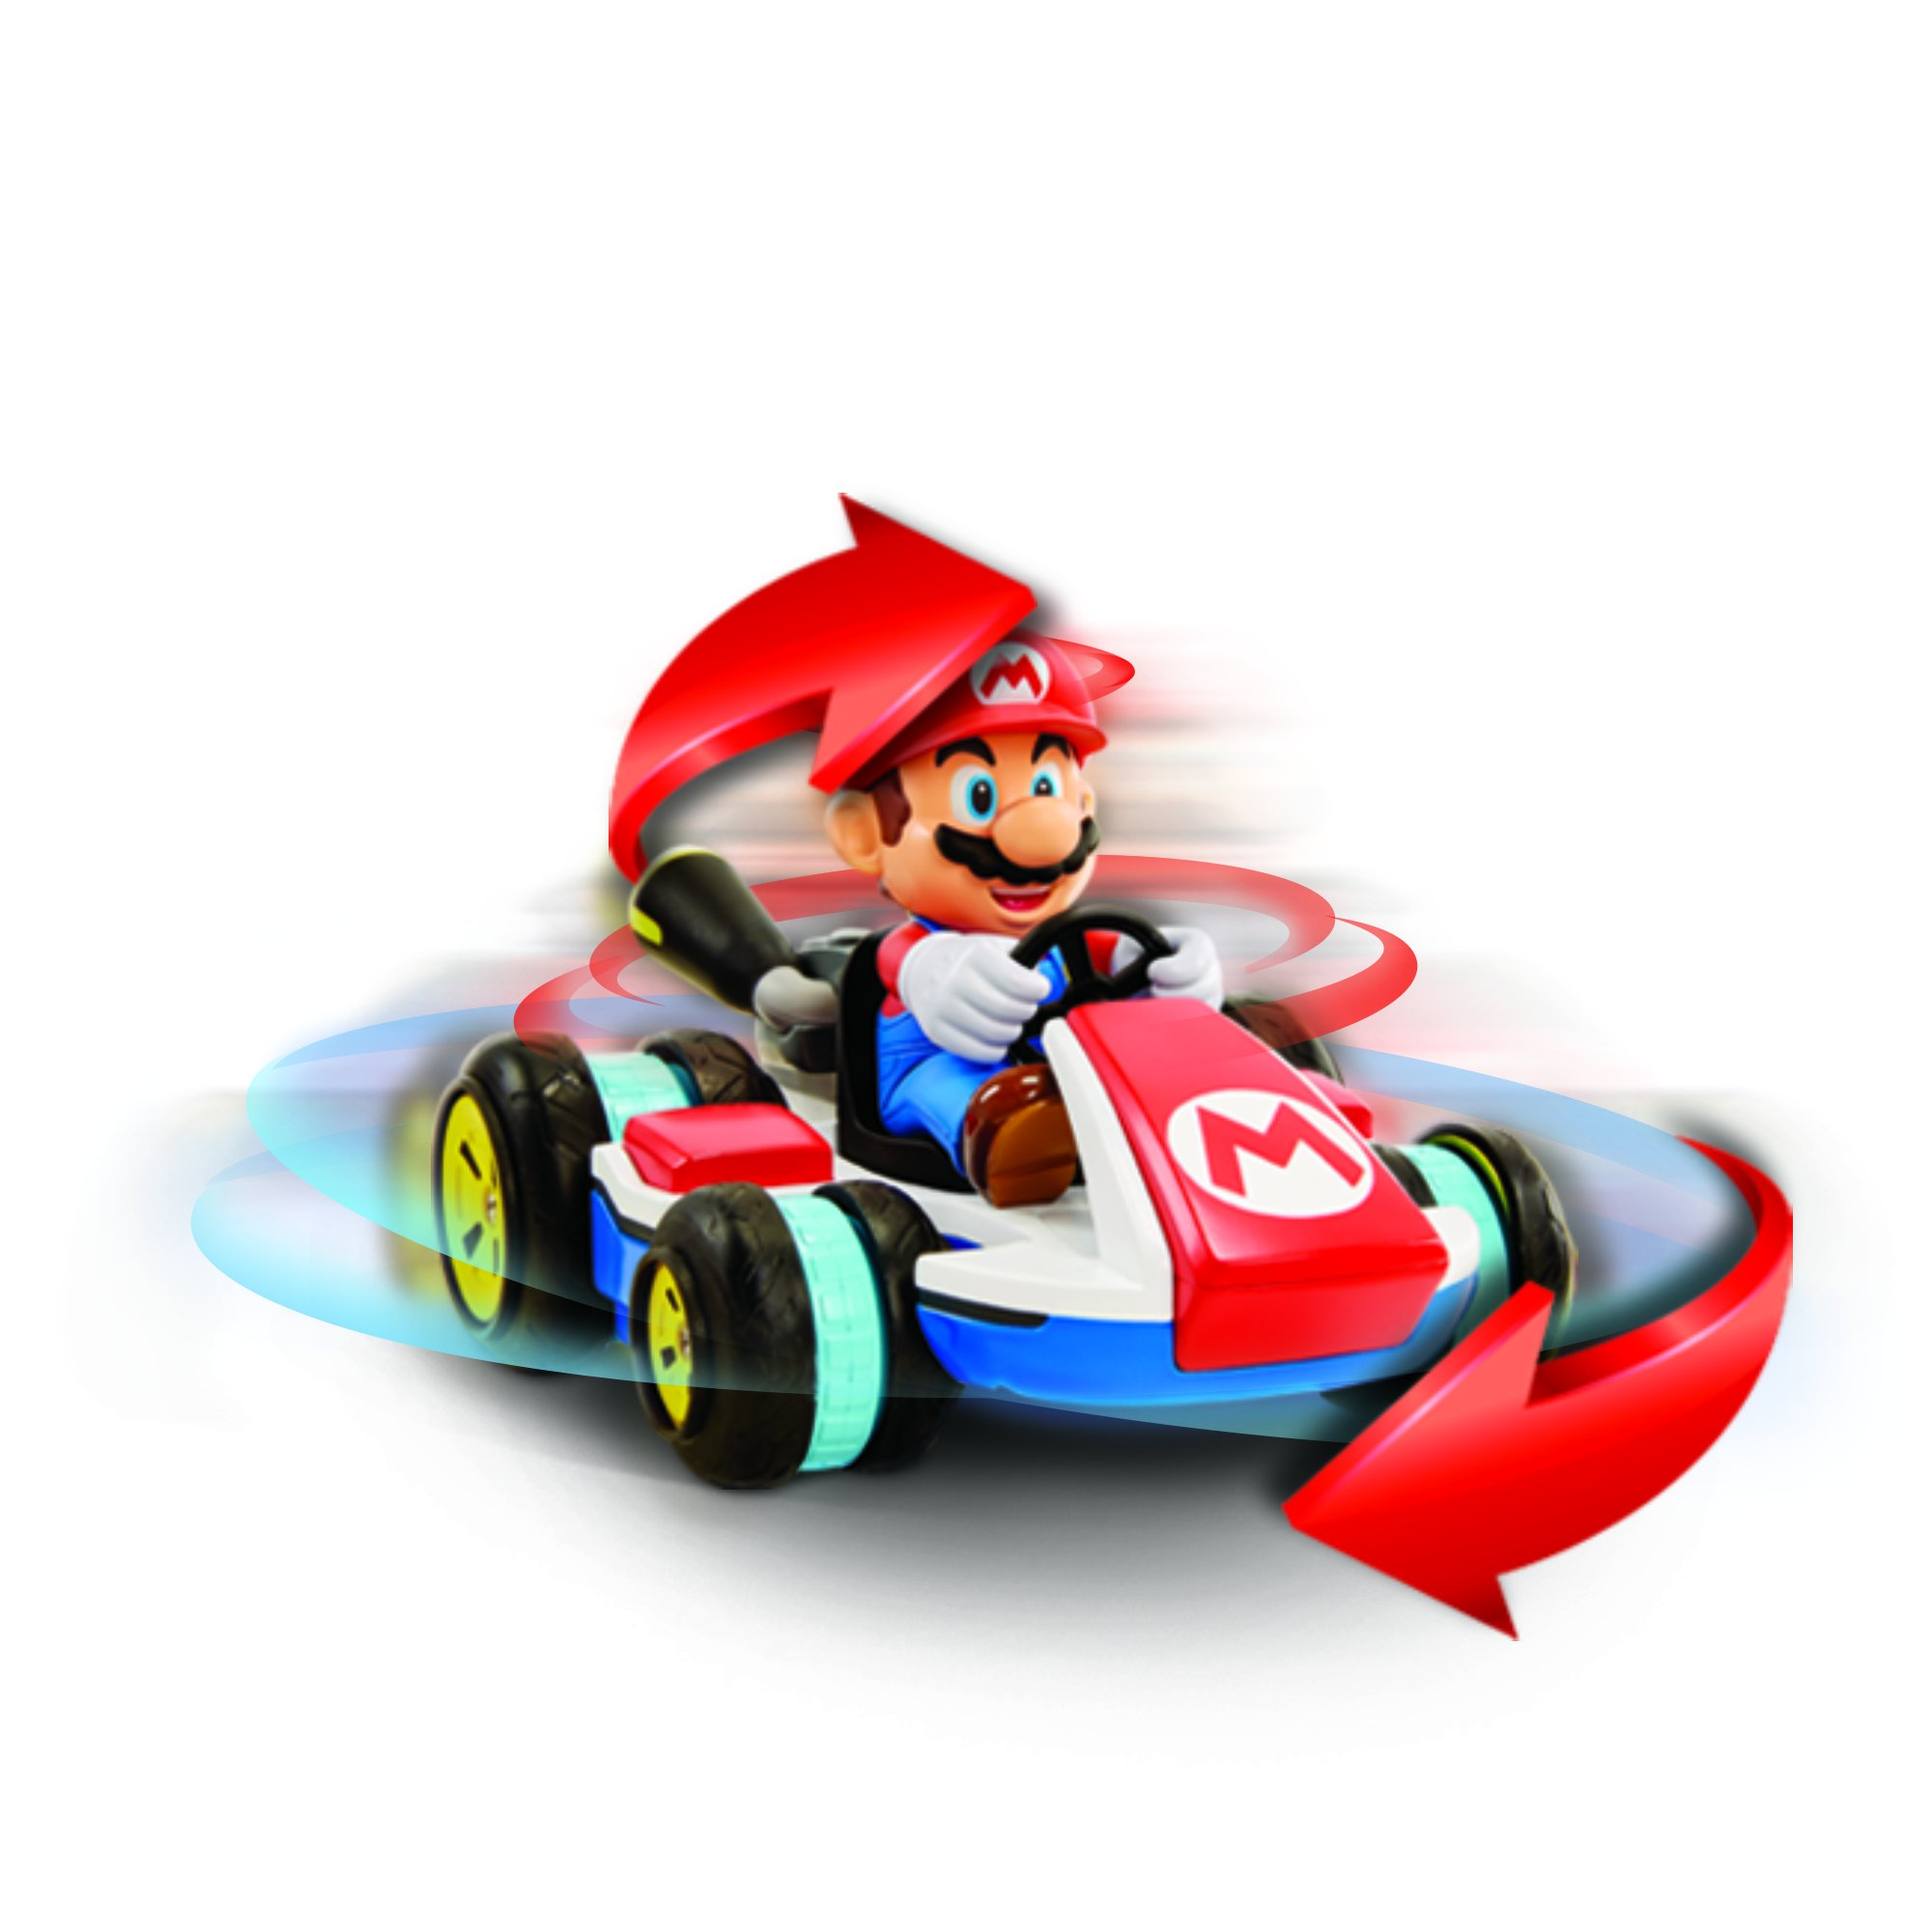 NINTENDO Super Mario Kart 8 Mario Anti-Gravity Mini RC Racer 2.4Ghz by Nintendo (Image #3)